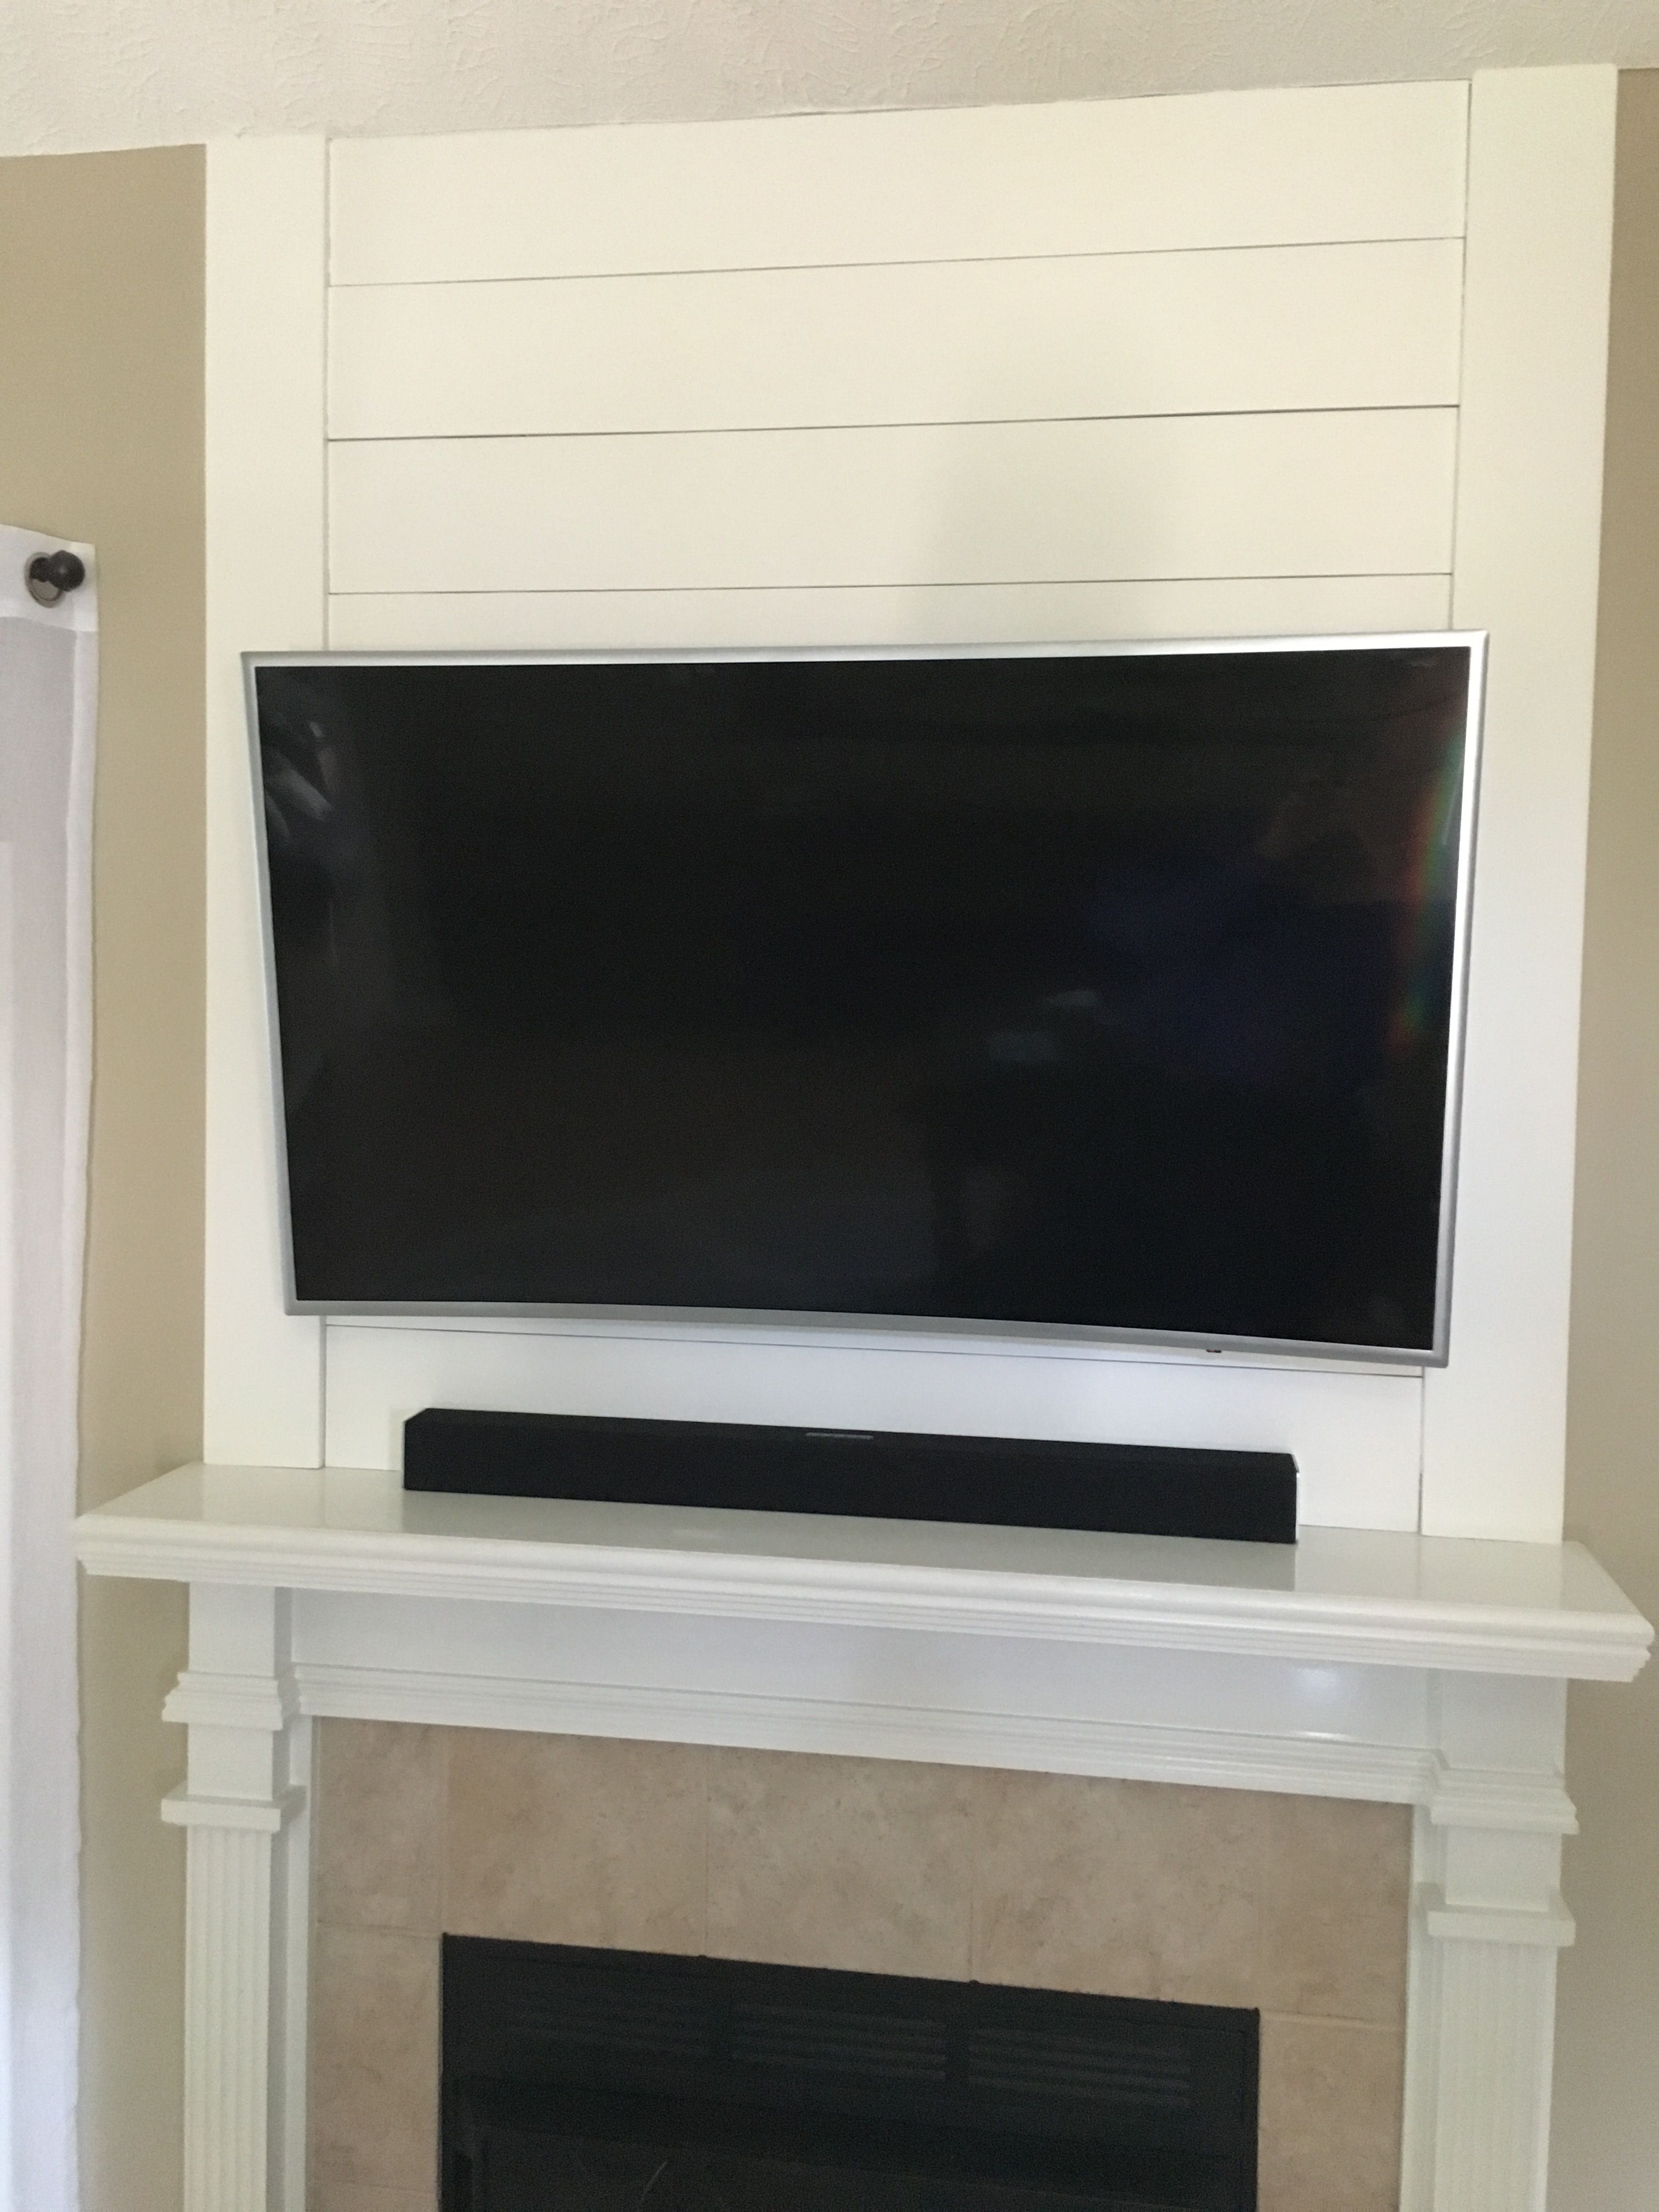 Shiplap To Cover Old Tv Cutout Over Fireplace Mantle Freestanding Fireplace Fireplace Seating Fireplace Drawing